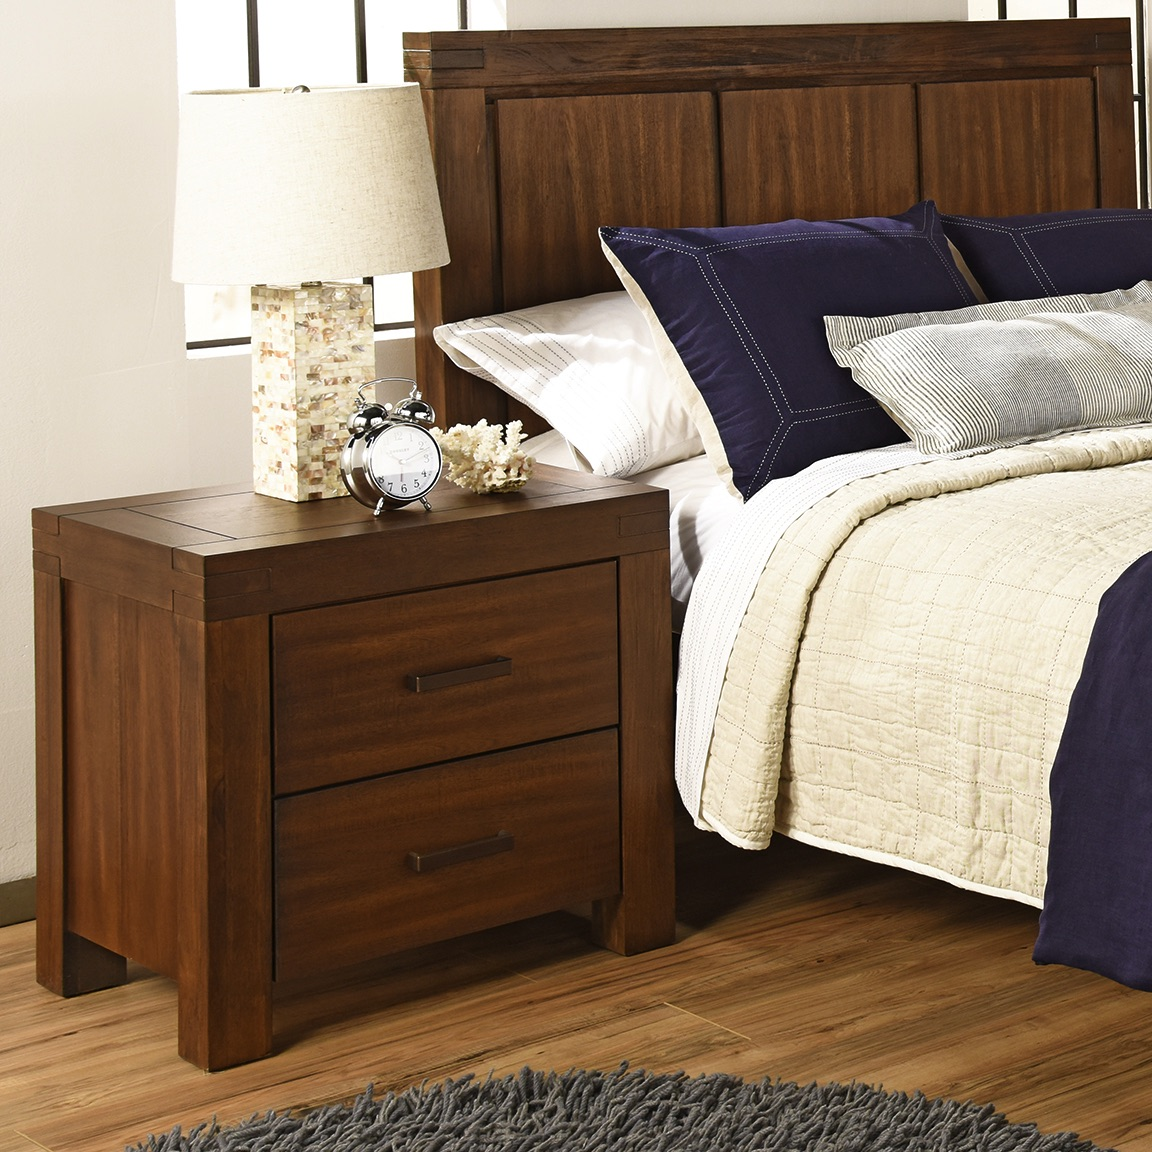 Pier One Baby Furniture: Night Stand - Piermont Rustic Farmhouse Brown